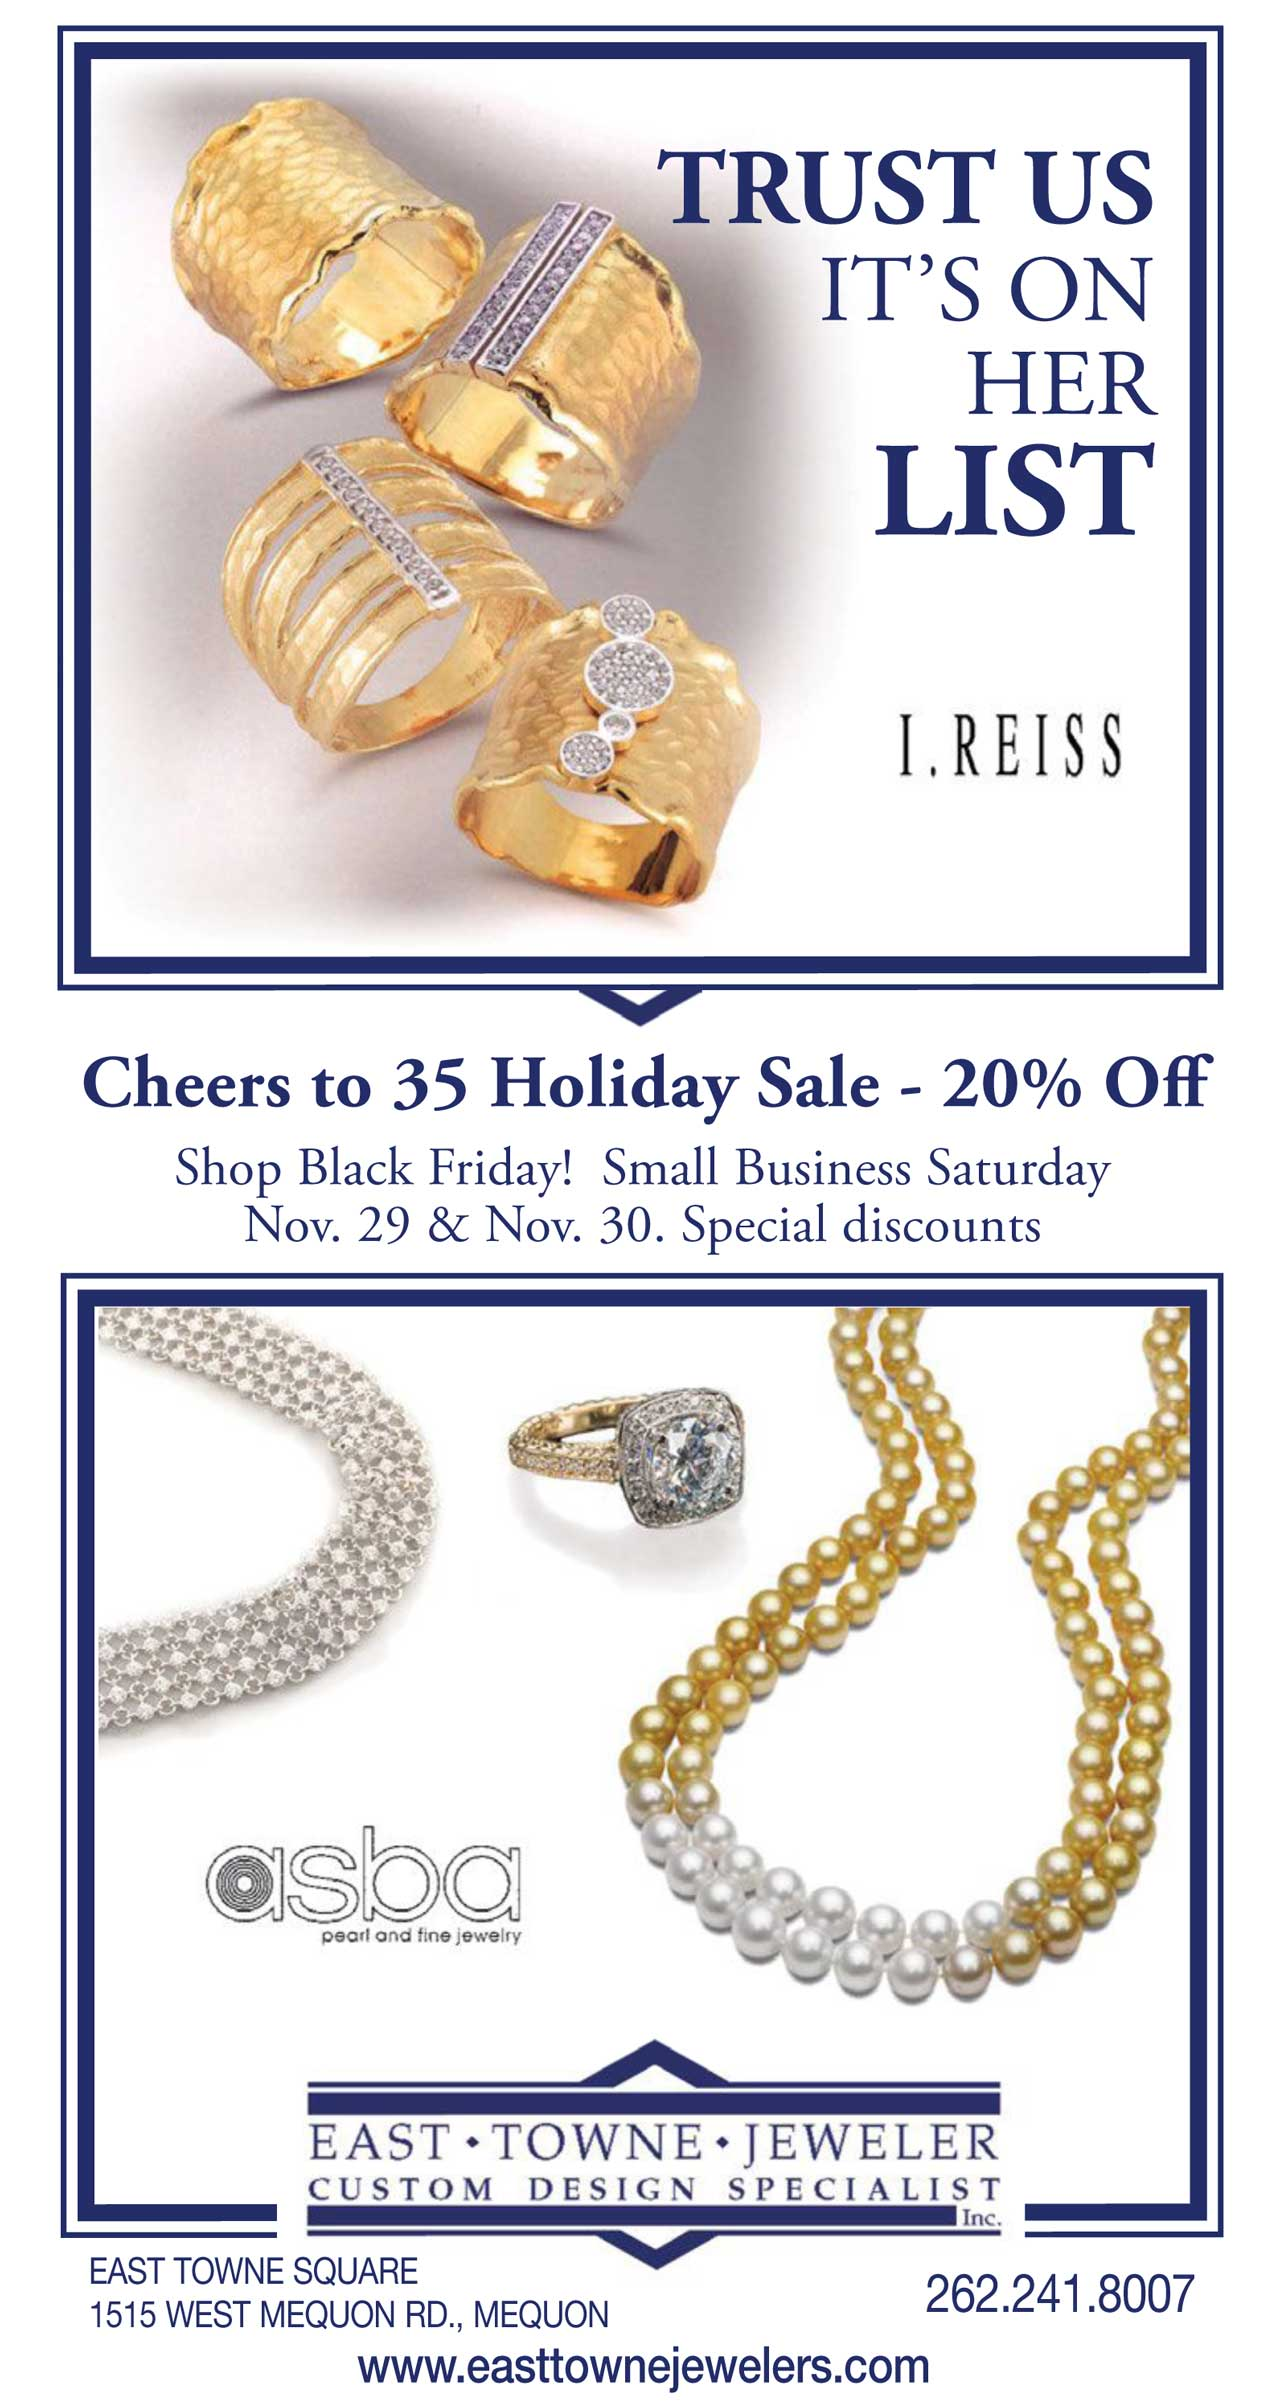 Holiday Sale 2019 | East Towne Jewelers | Mequon, WI